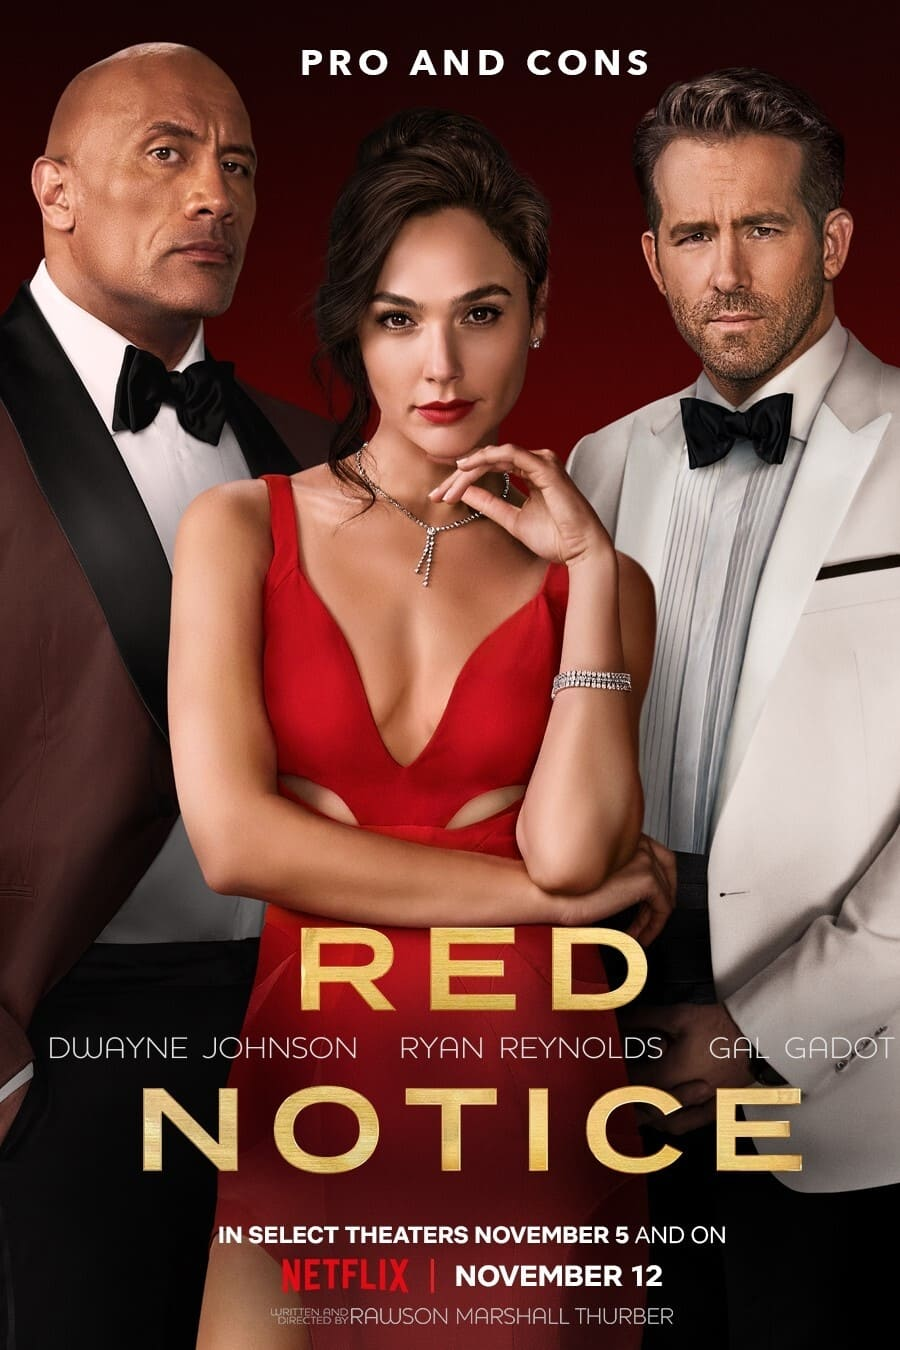 Red Notice Poster